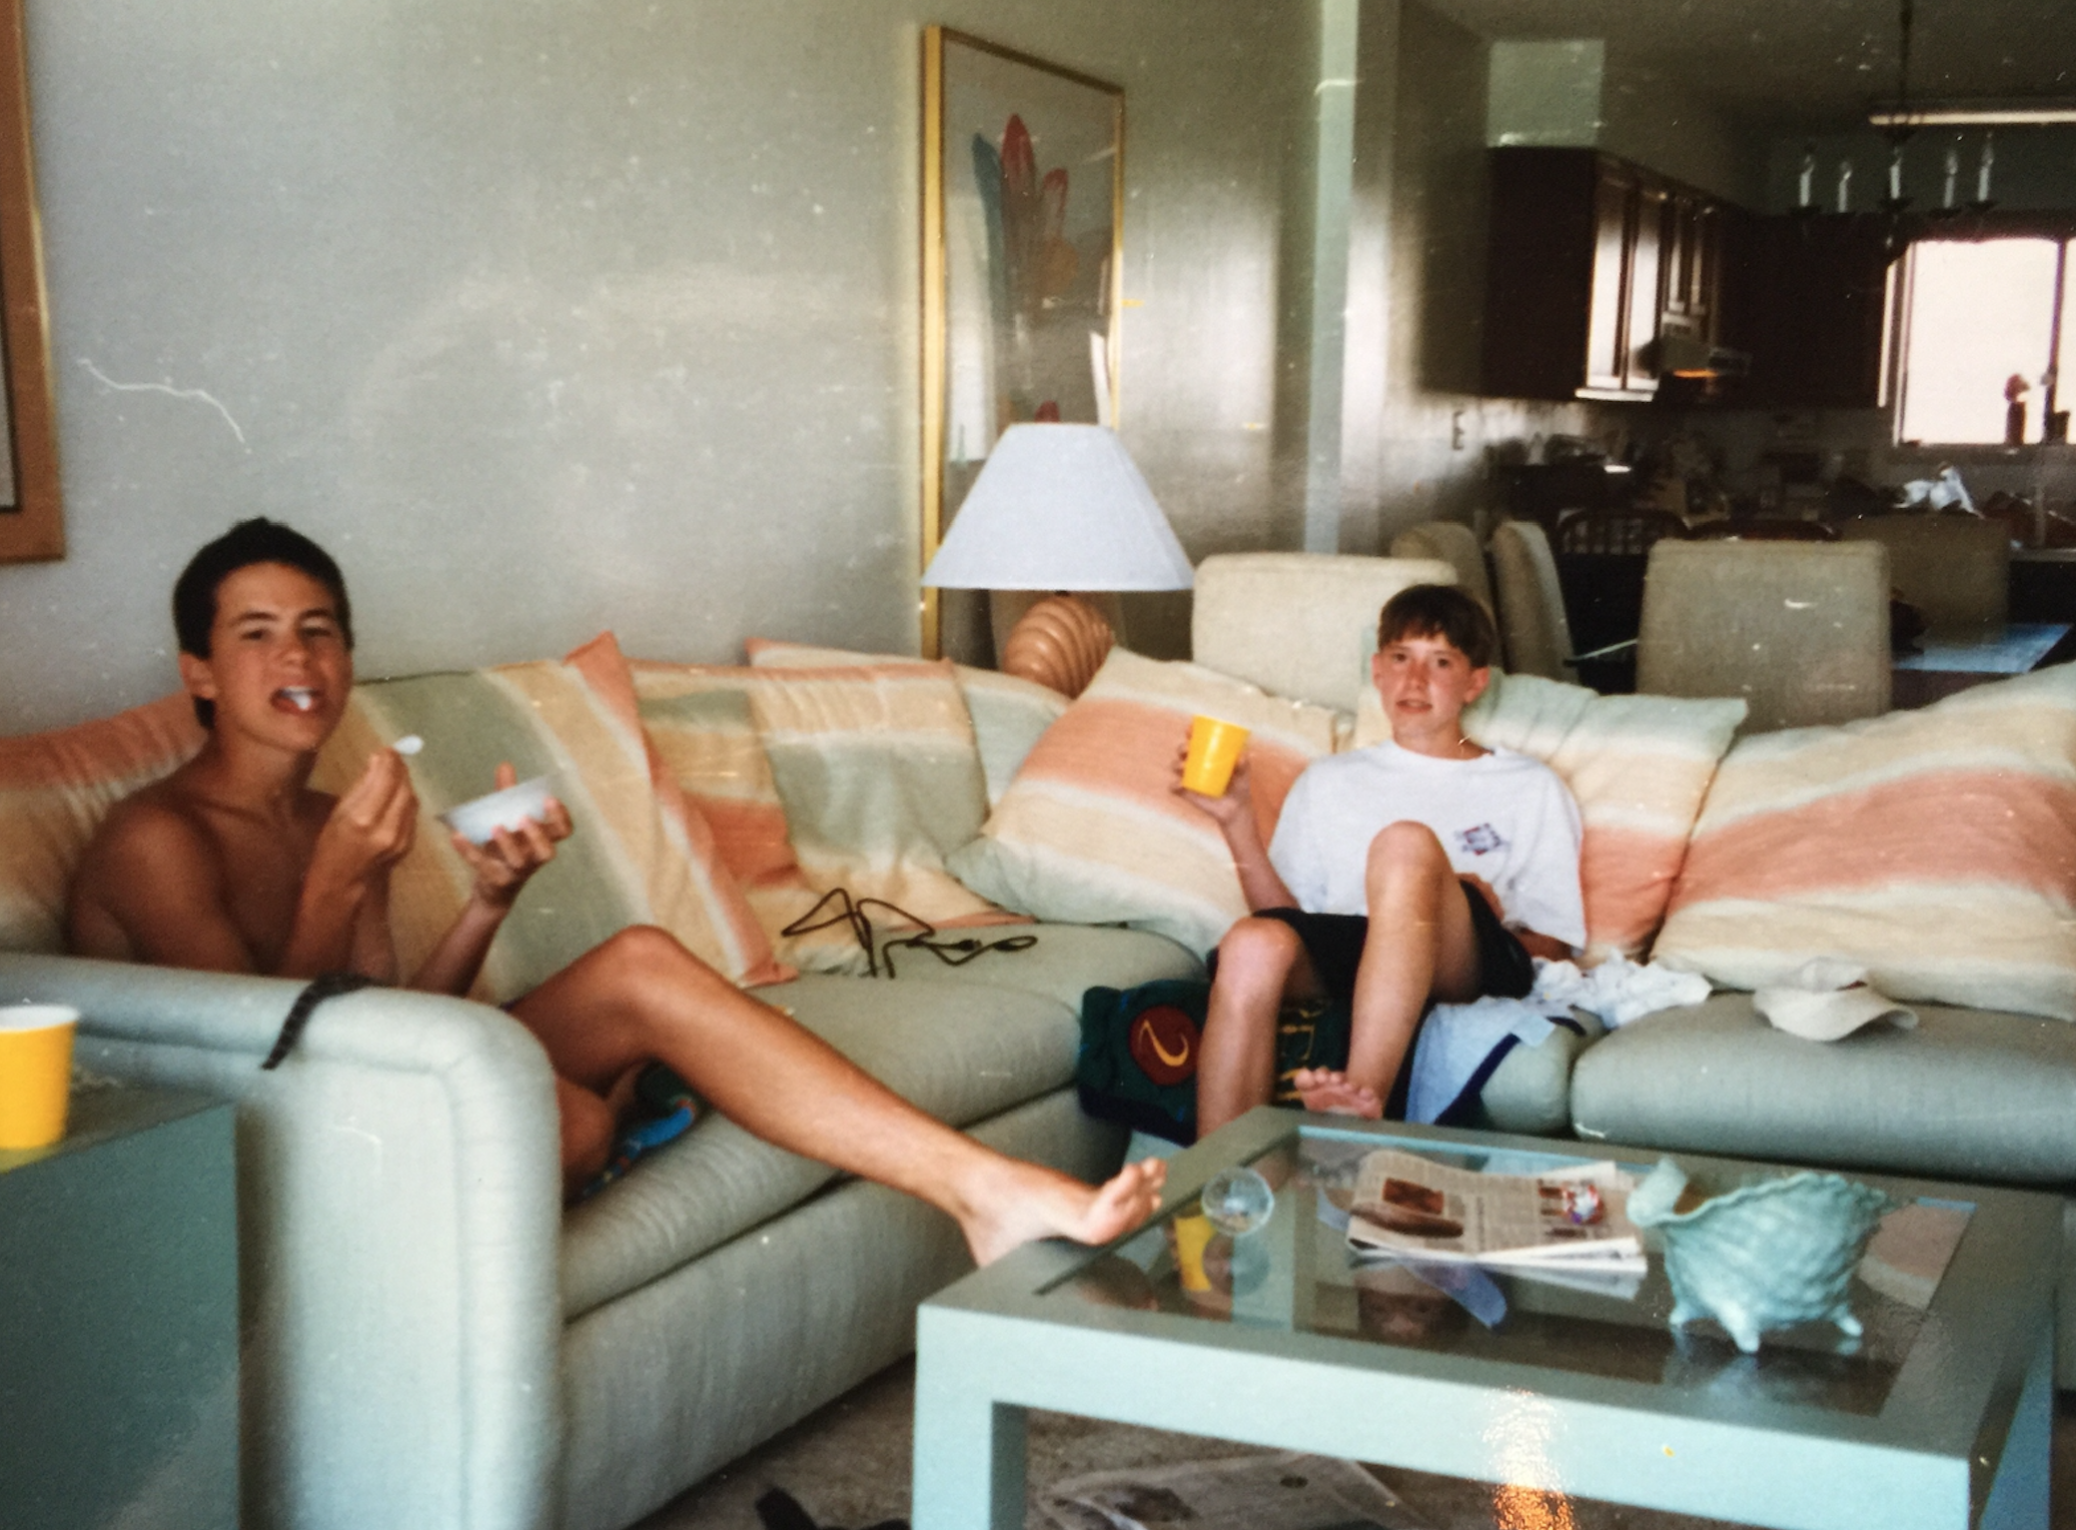 A shot from that beach trip. Me on left, my buddy Tom on the right, 90s beach condo ephemera all around.